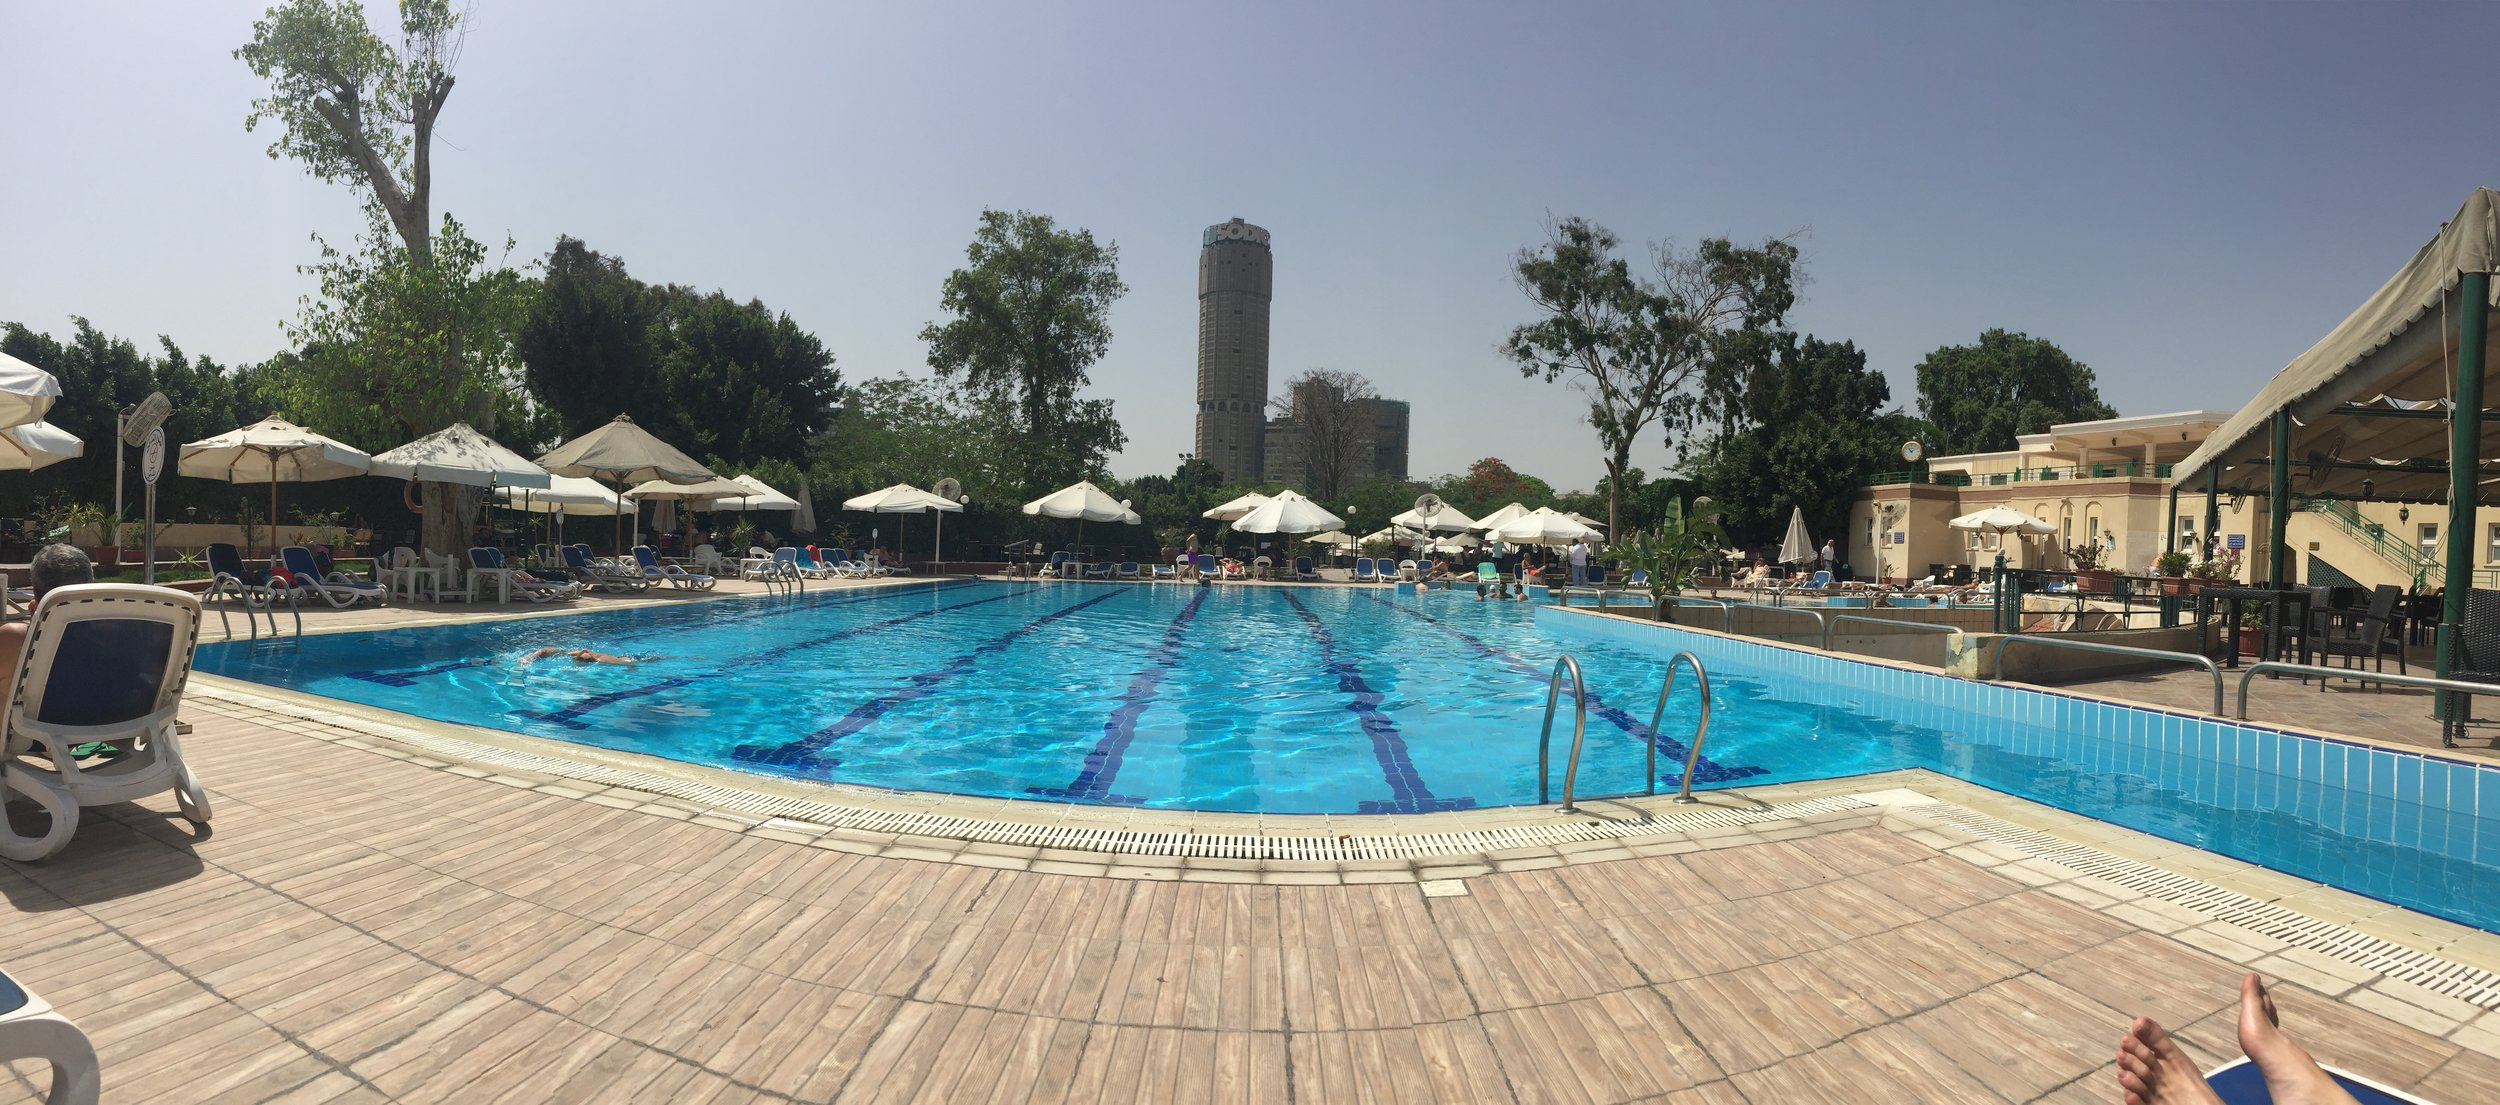 We spent a day with Mo lounging at his old pool in the Al Gazira Club, the Zamalek equivalent of a country club. His uncle used to be a polo star at the club.